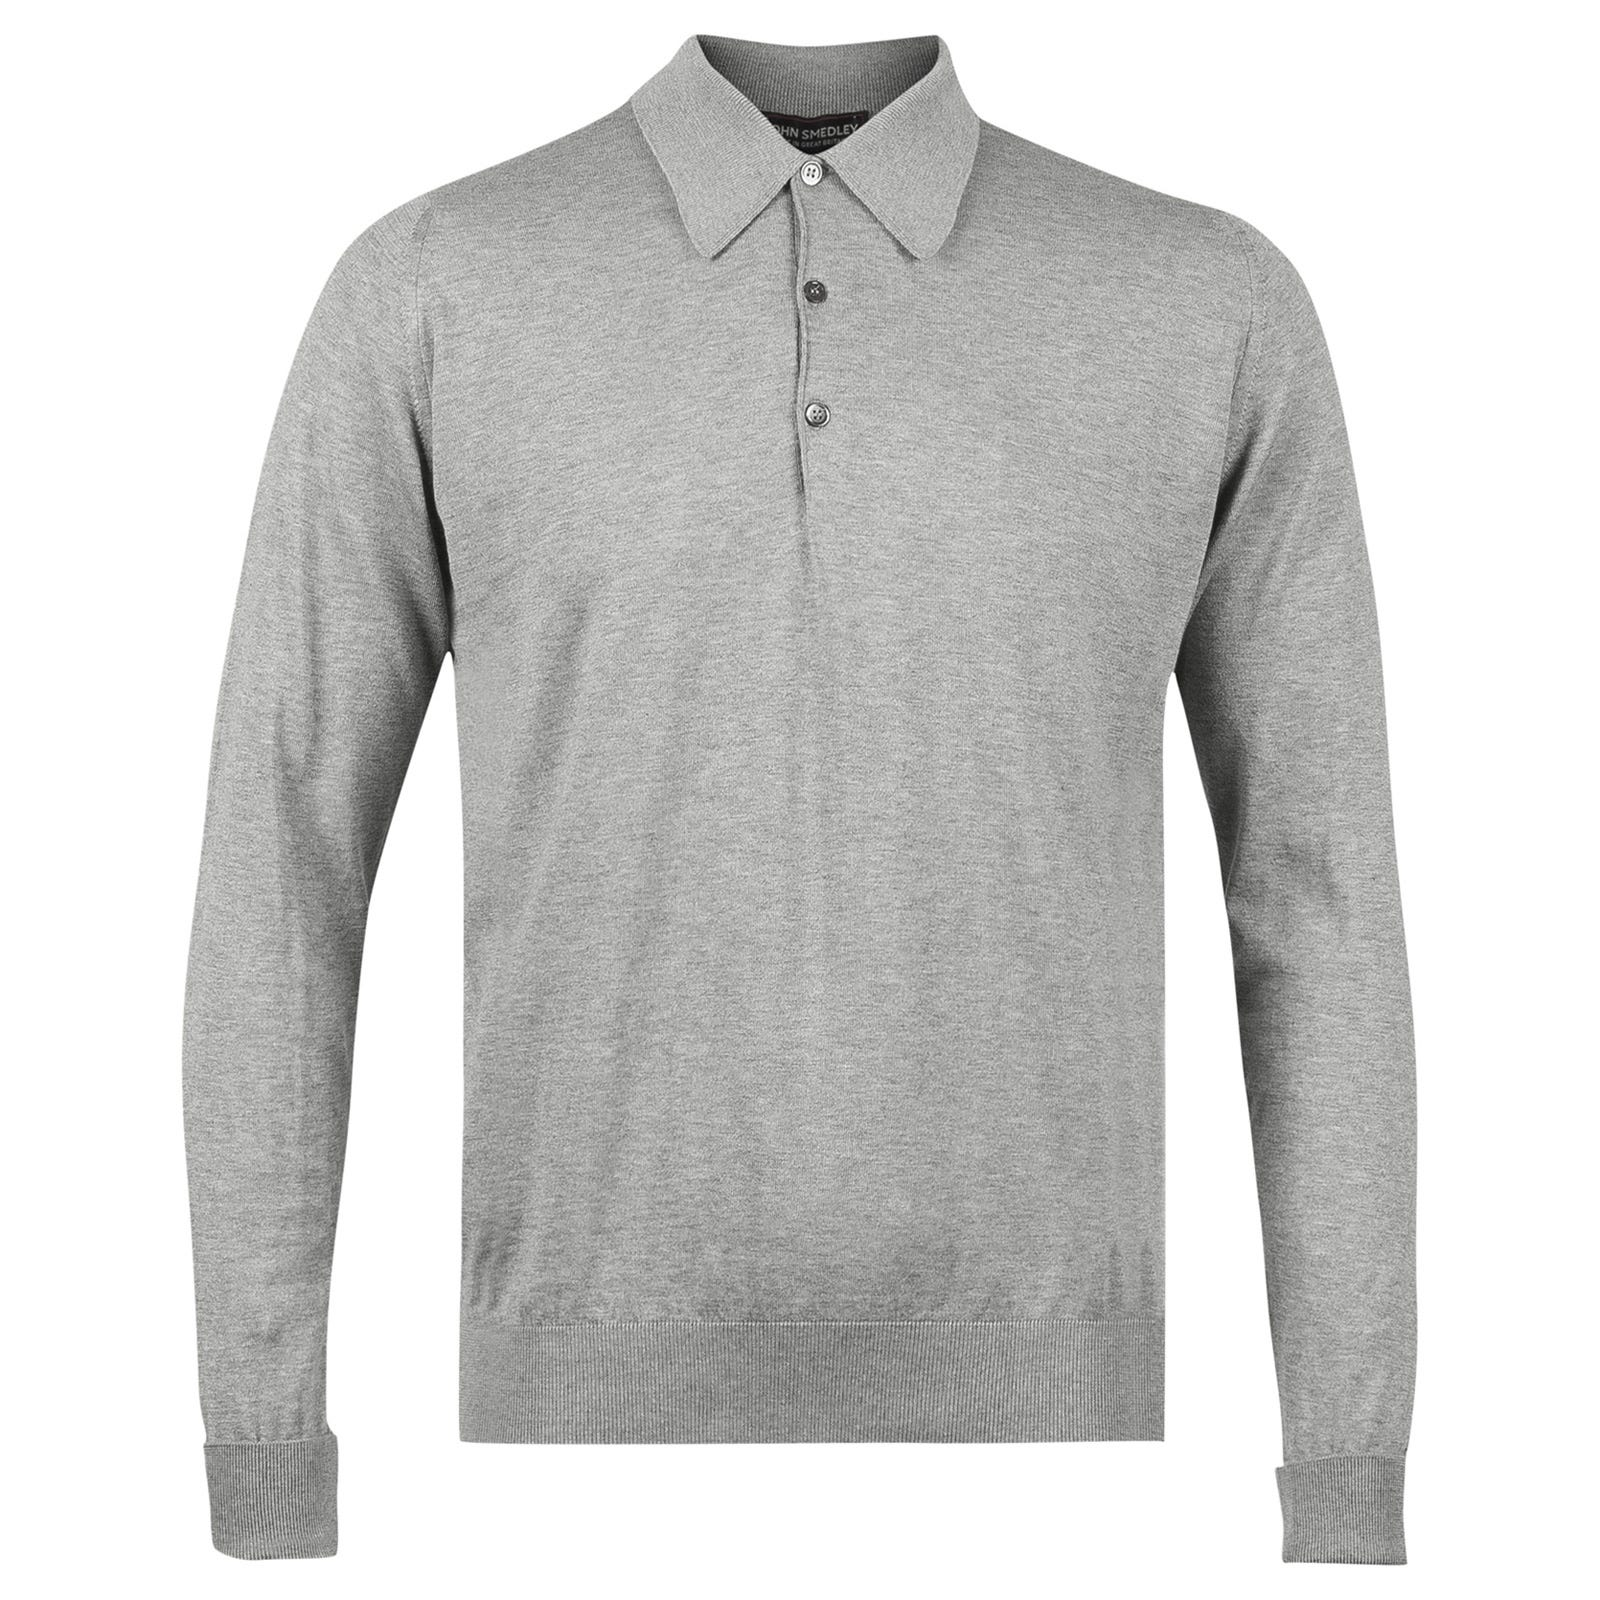 John Smedley finchley Sea Island Cotton Shirt in Silver-XL